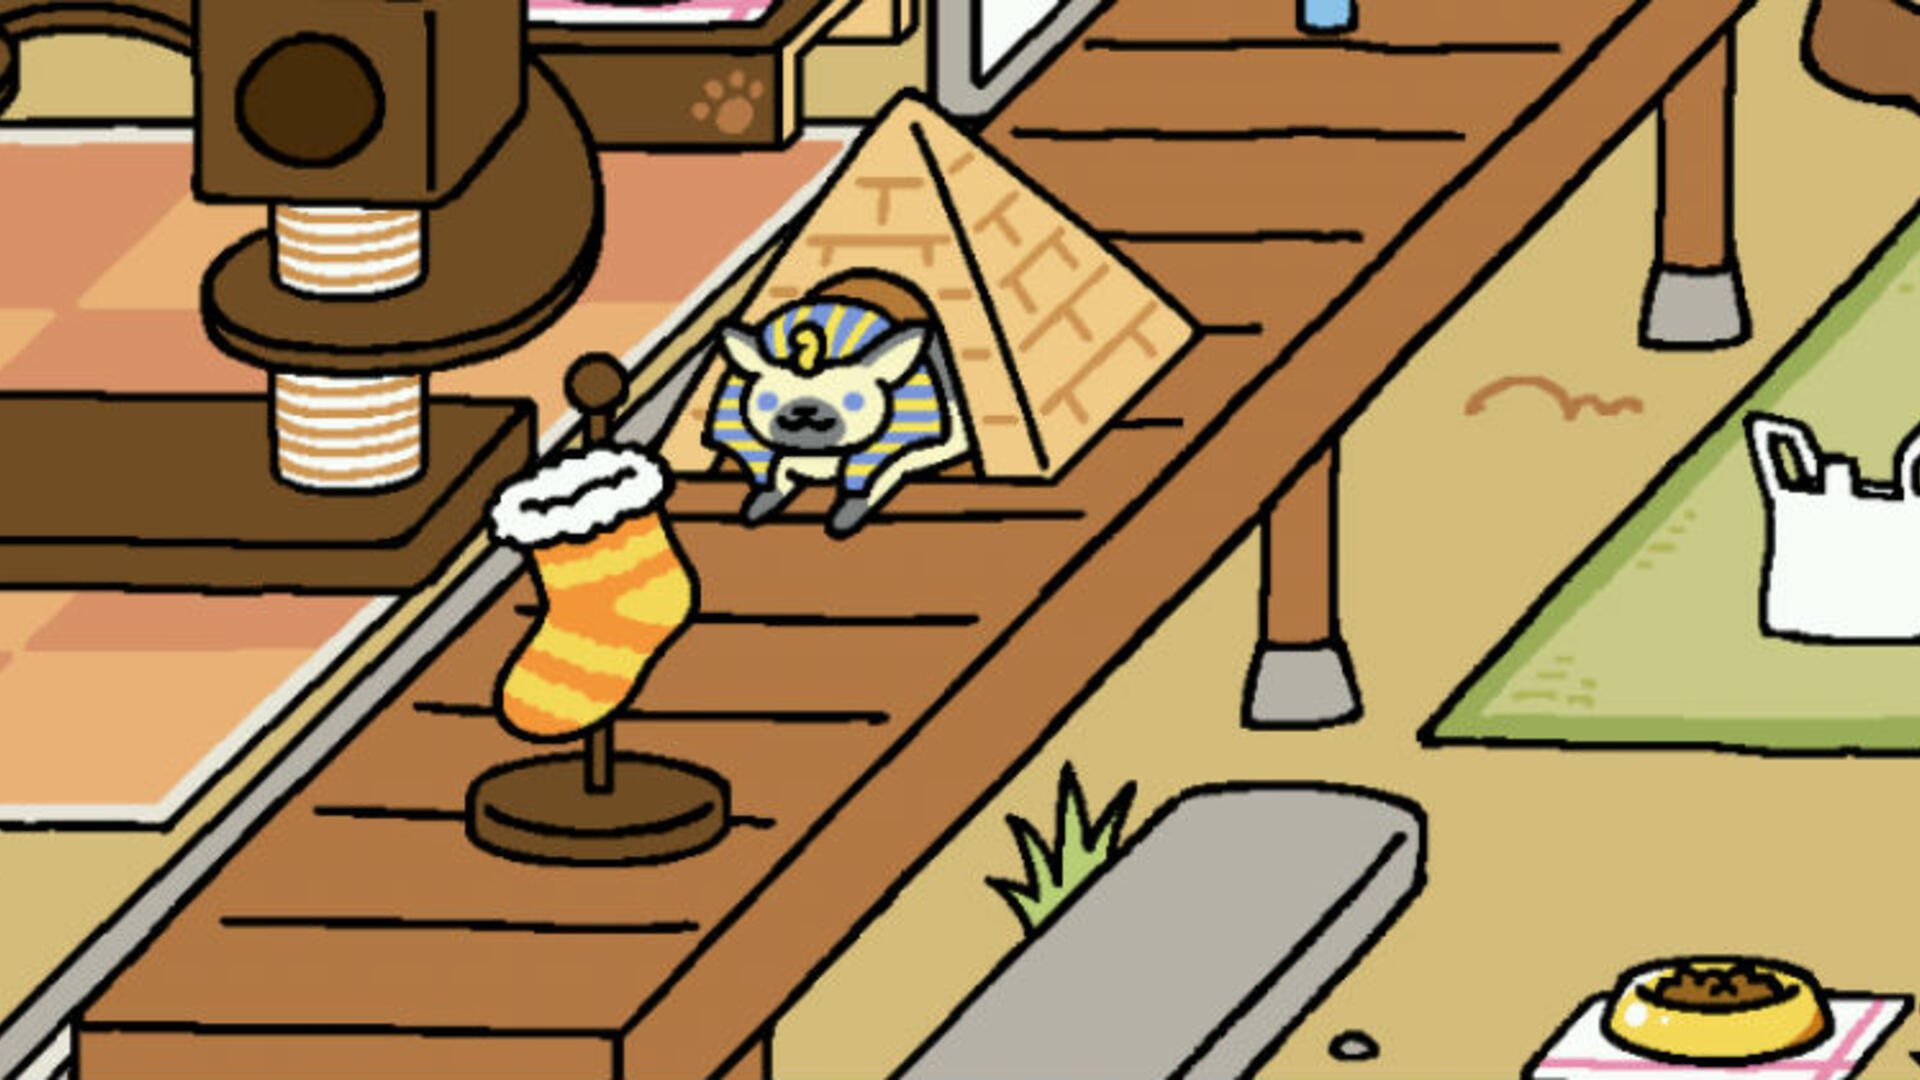 Neko Atsume: How to Get Every Rare Cat -- Bengal Jack, Frosty, Sapphire, Jeeves, and More